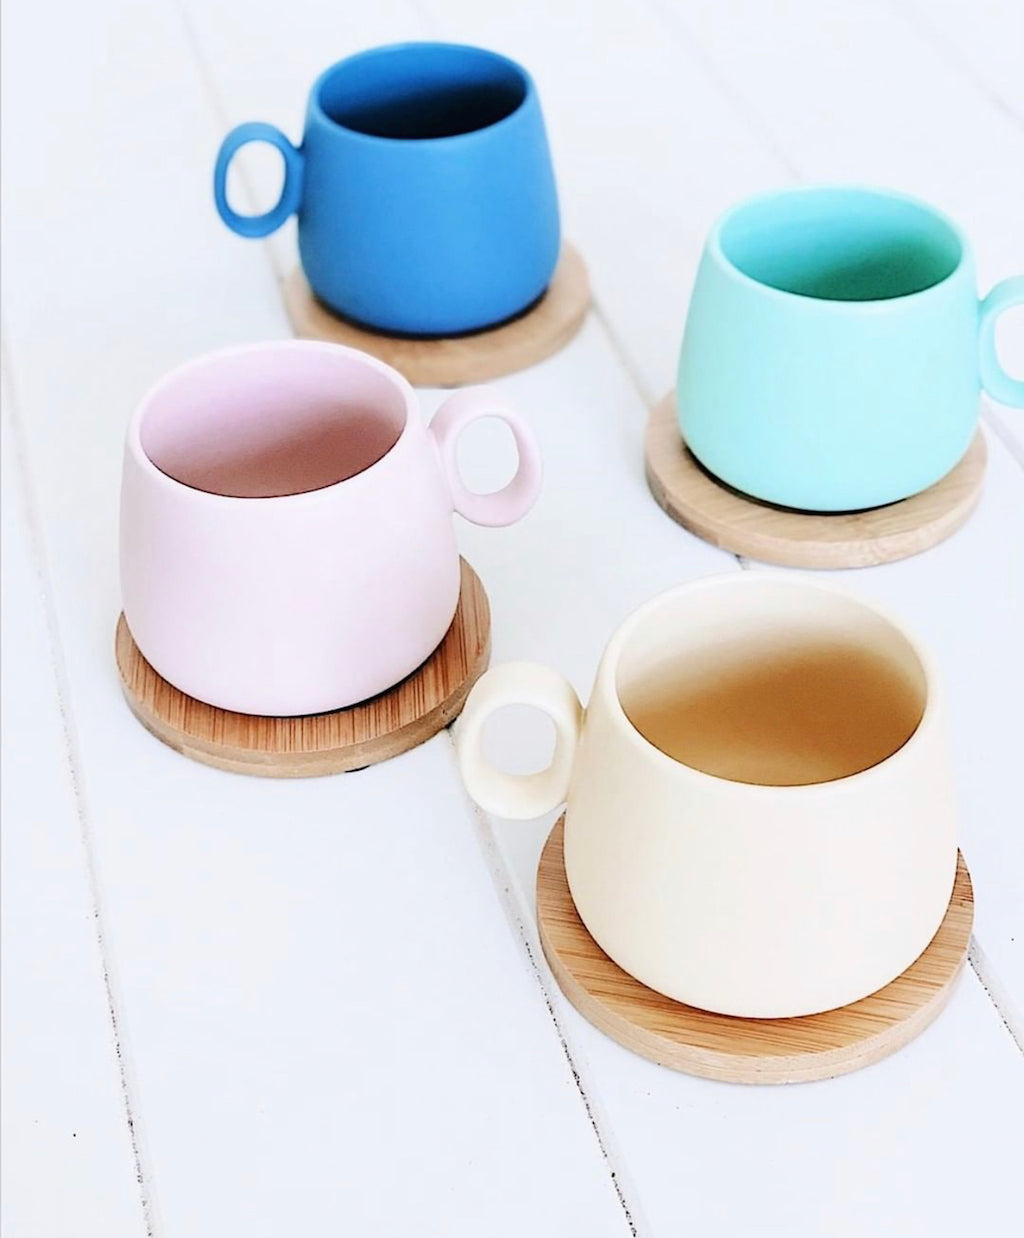 Enjoy the perfect coffee experience with the Coffee Culture 8 Piece Coffee Mug Gift Set. This trendy colourful mug set is made from Quality Ceramic in a modern design, with a Matte finish. Set includes 4 250ml coloured Mugs & 4 Bamboo Coasters. Shop online or instore. AfterPay available. Australia wide Shipping. | Bliss Gifts & Homewares | Unit 8, 259 Princes Hwy Ulladulla | South Coast NSW | 0427795959, 44541523